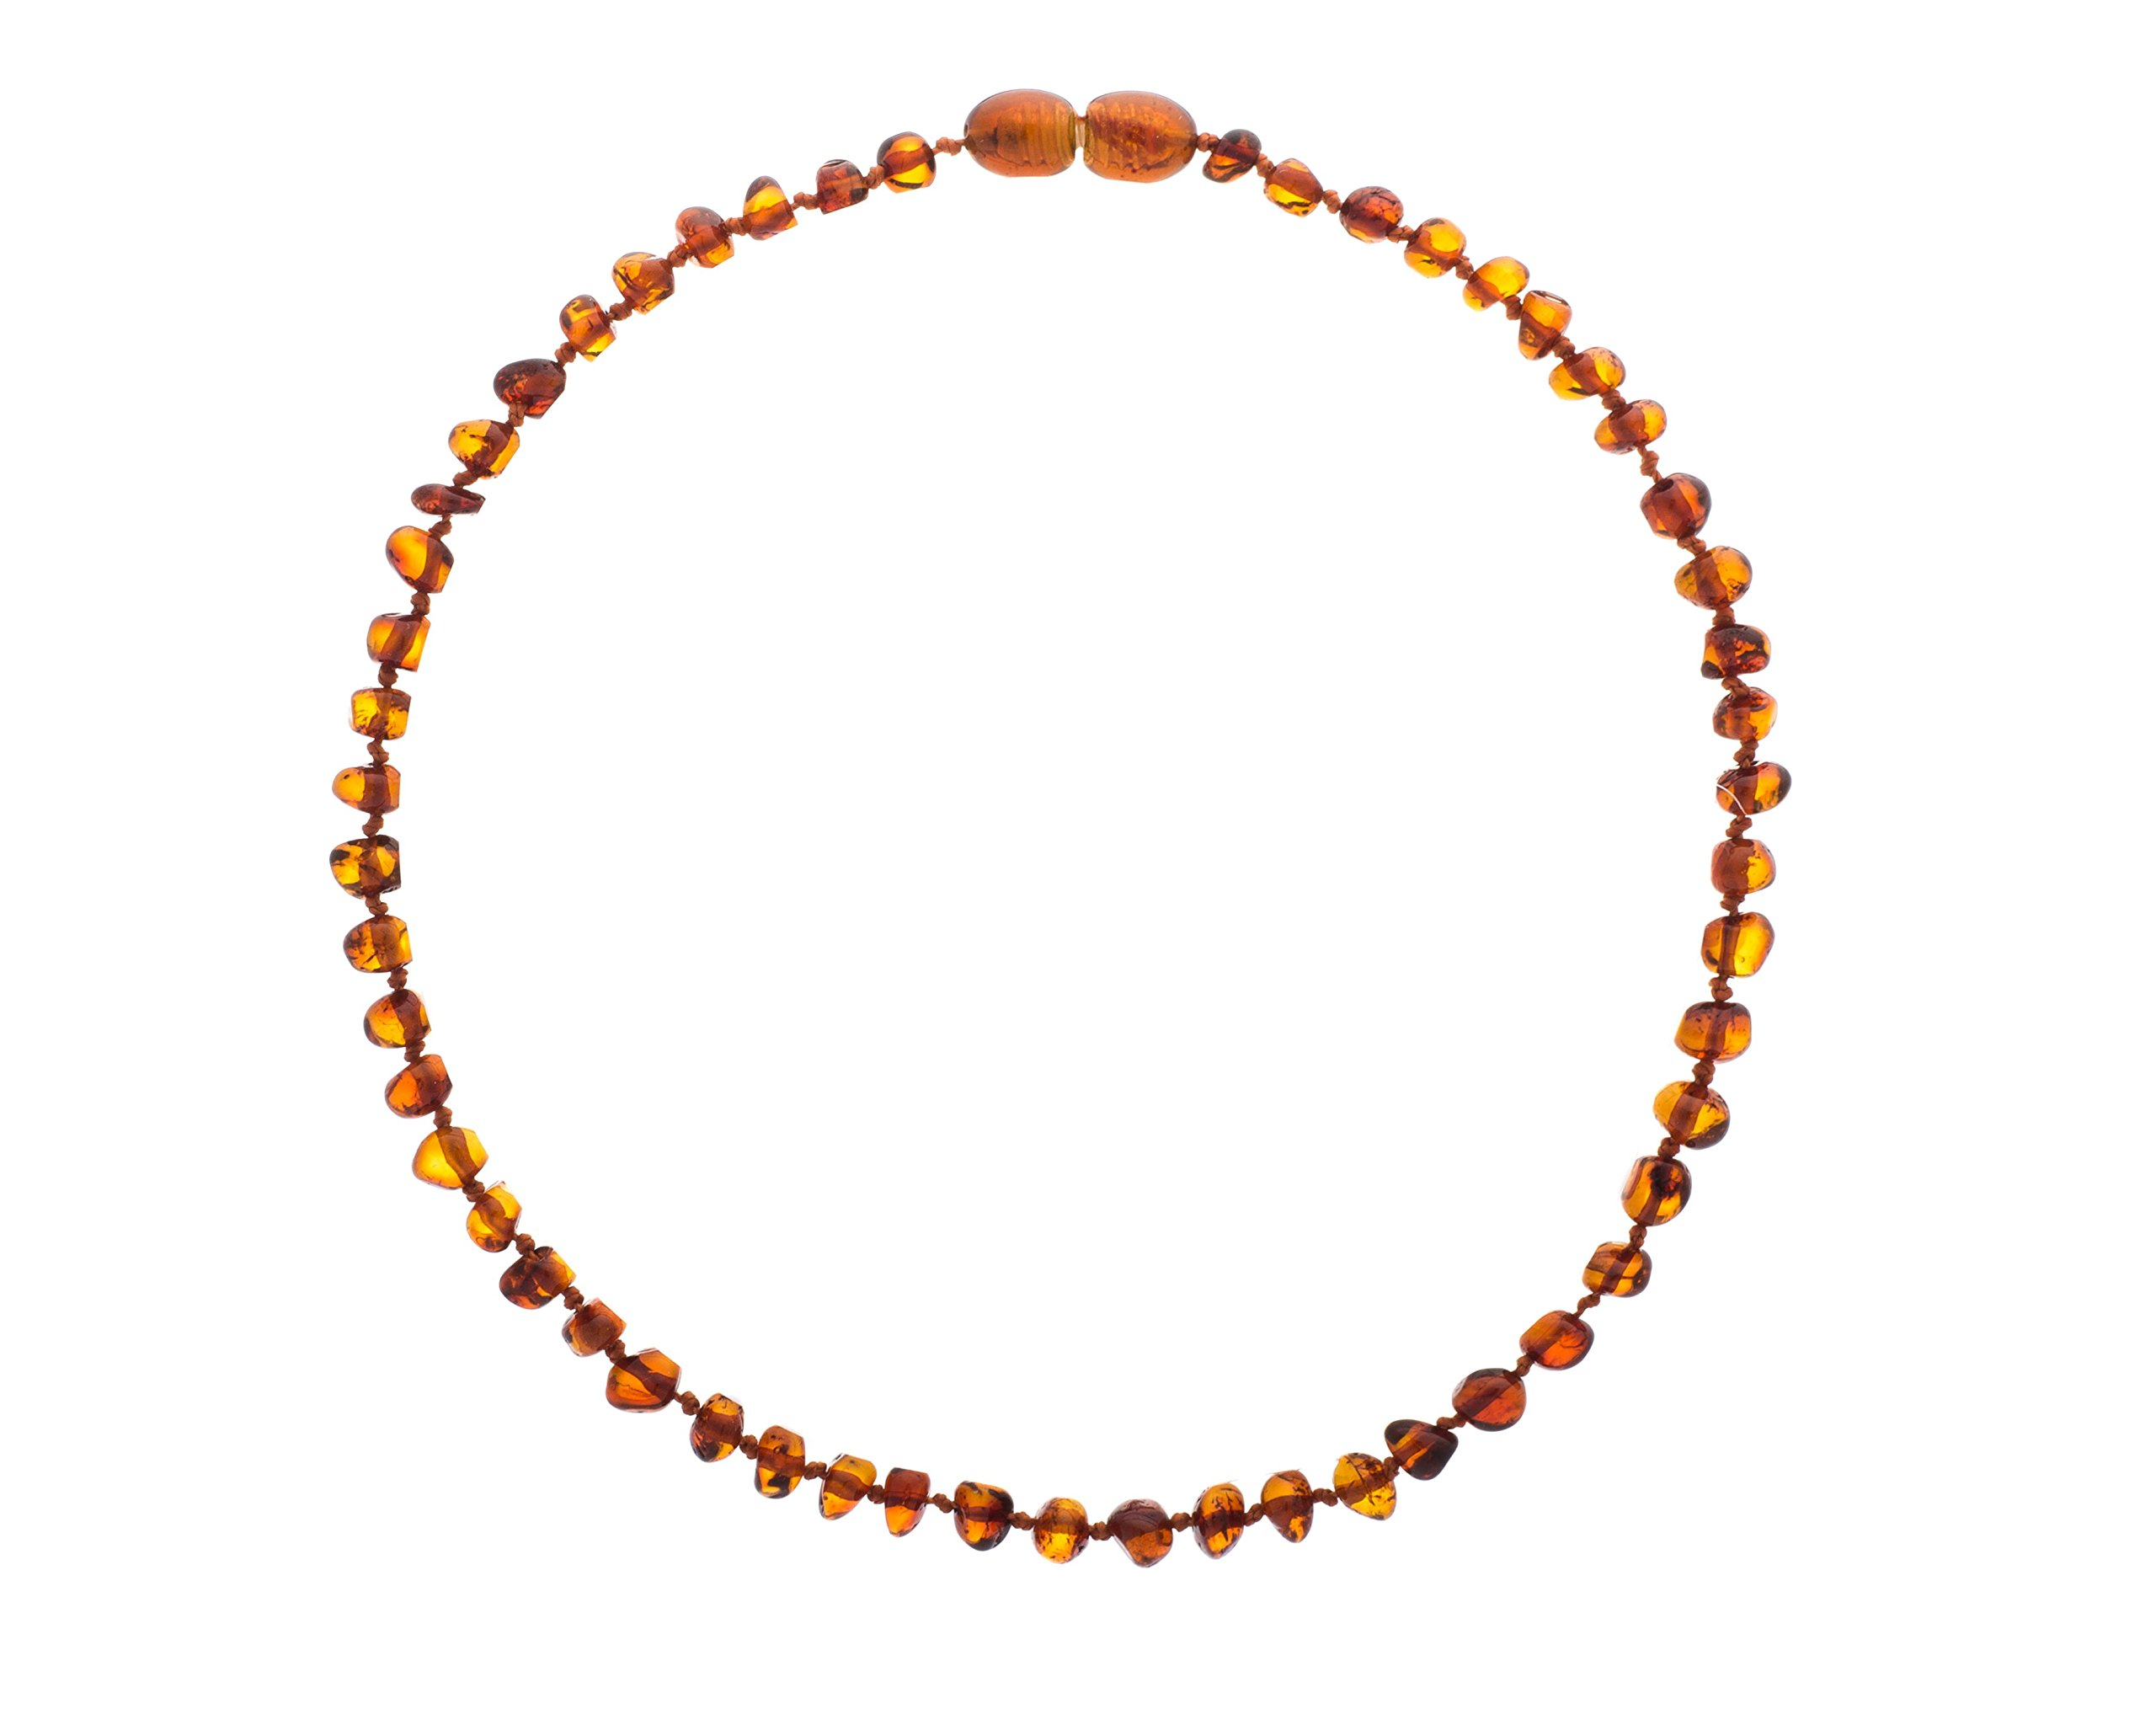 Baltic Amber Teething Necklace For Babies (Unisex) (Cognac) - Anti Flammatory, Drooling & Teething Pain Reduce Properties - Natural Certificated Oval Baltic Jewelry with the Highest Quality Guaranteed by Baltic Wonder (Image #2)